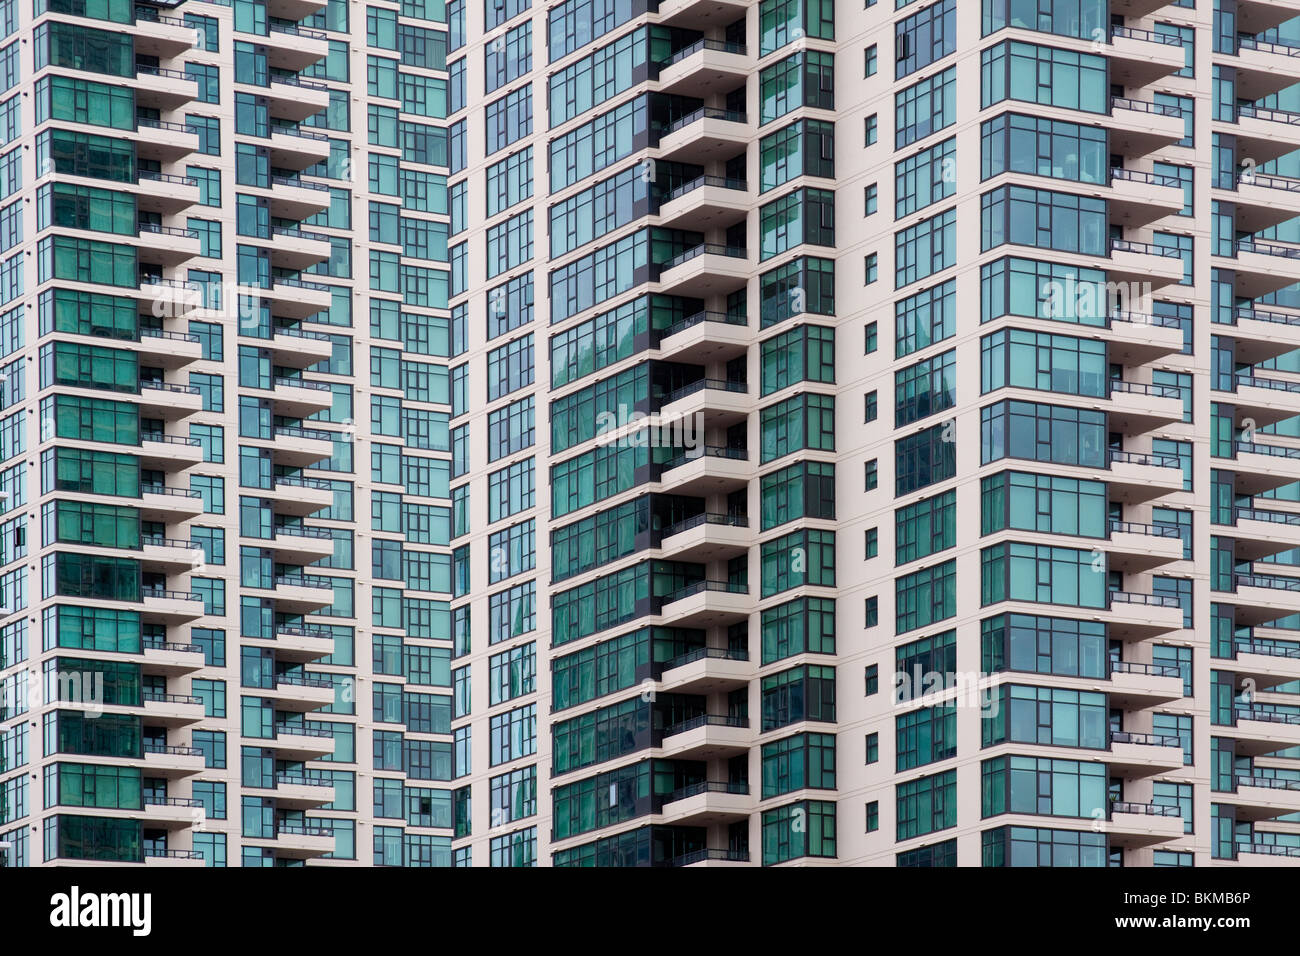 Many windows and balconies of modern high rise building in San Diego, California - Stock Image